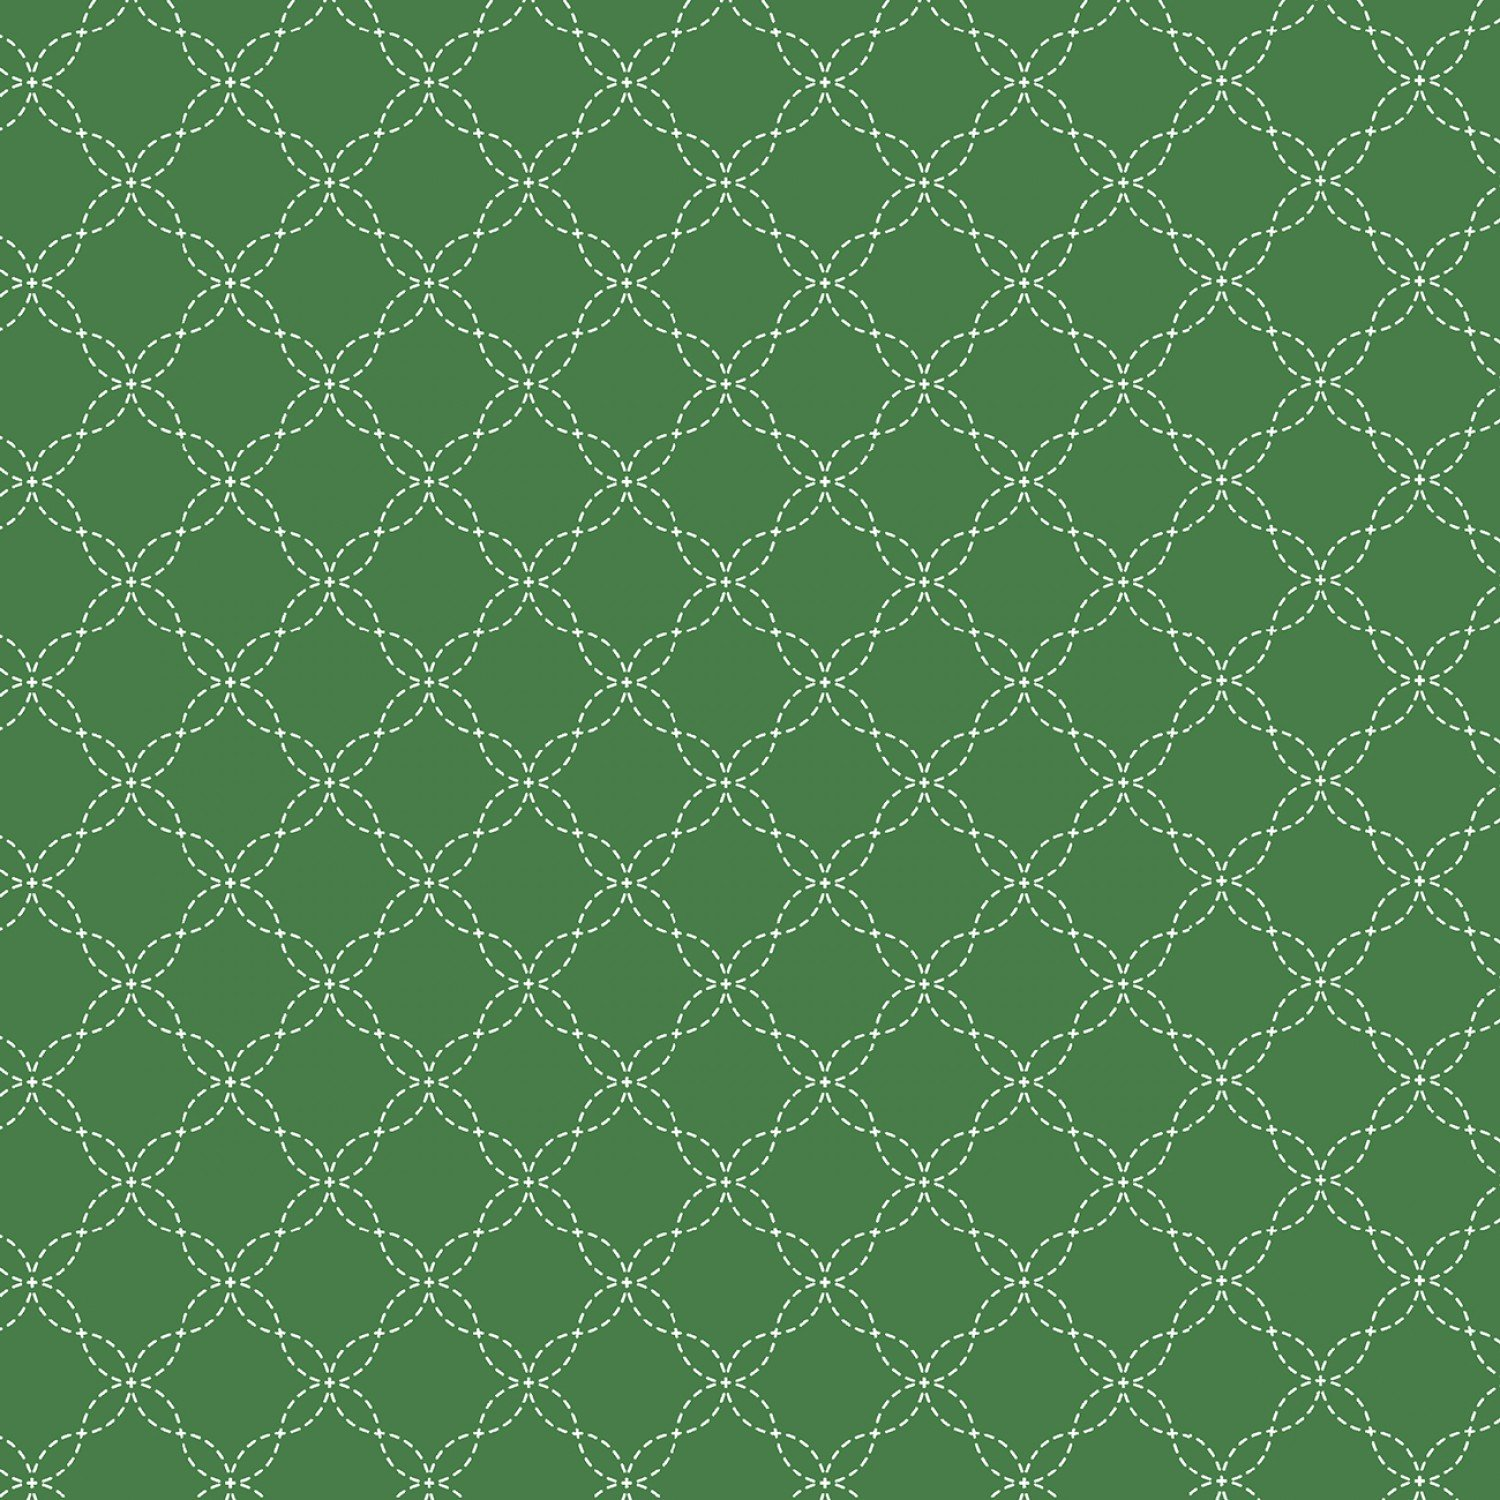 Green Lattice